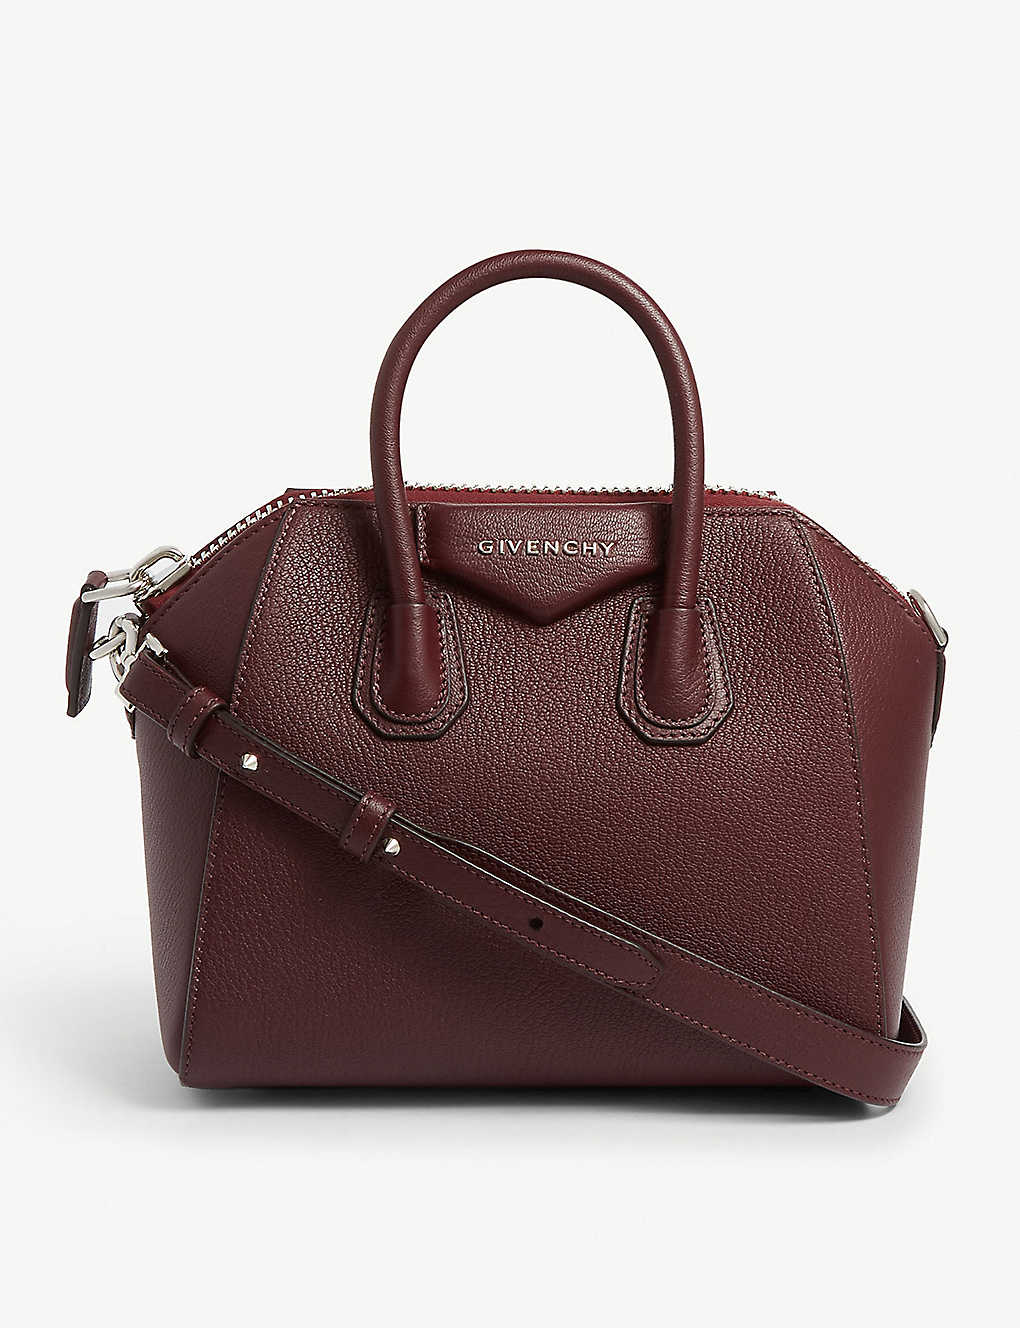 GIVENCHY - Antigona mini leather shoulder bag  d9aac5be749d5